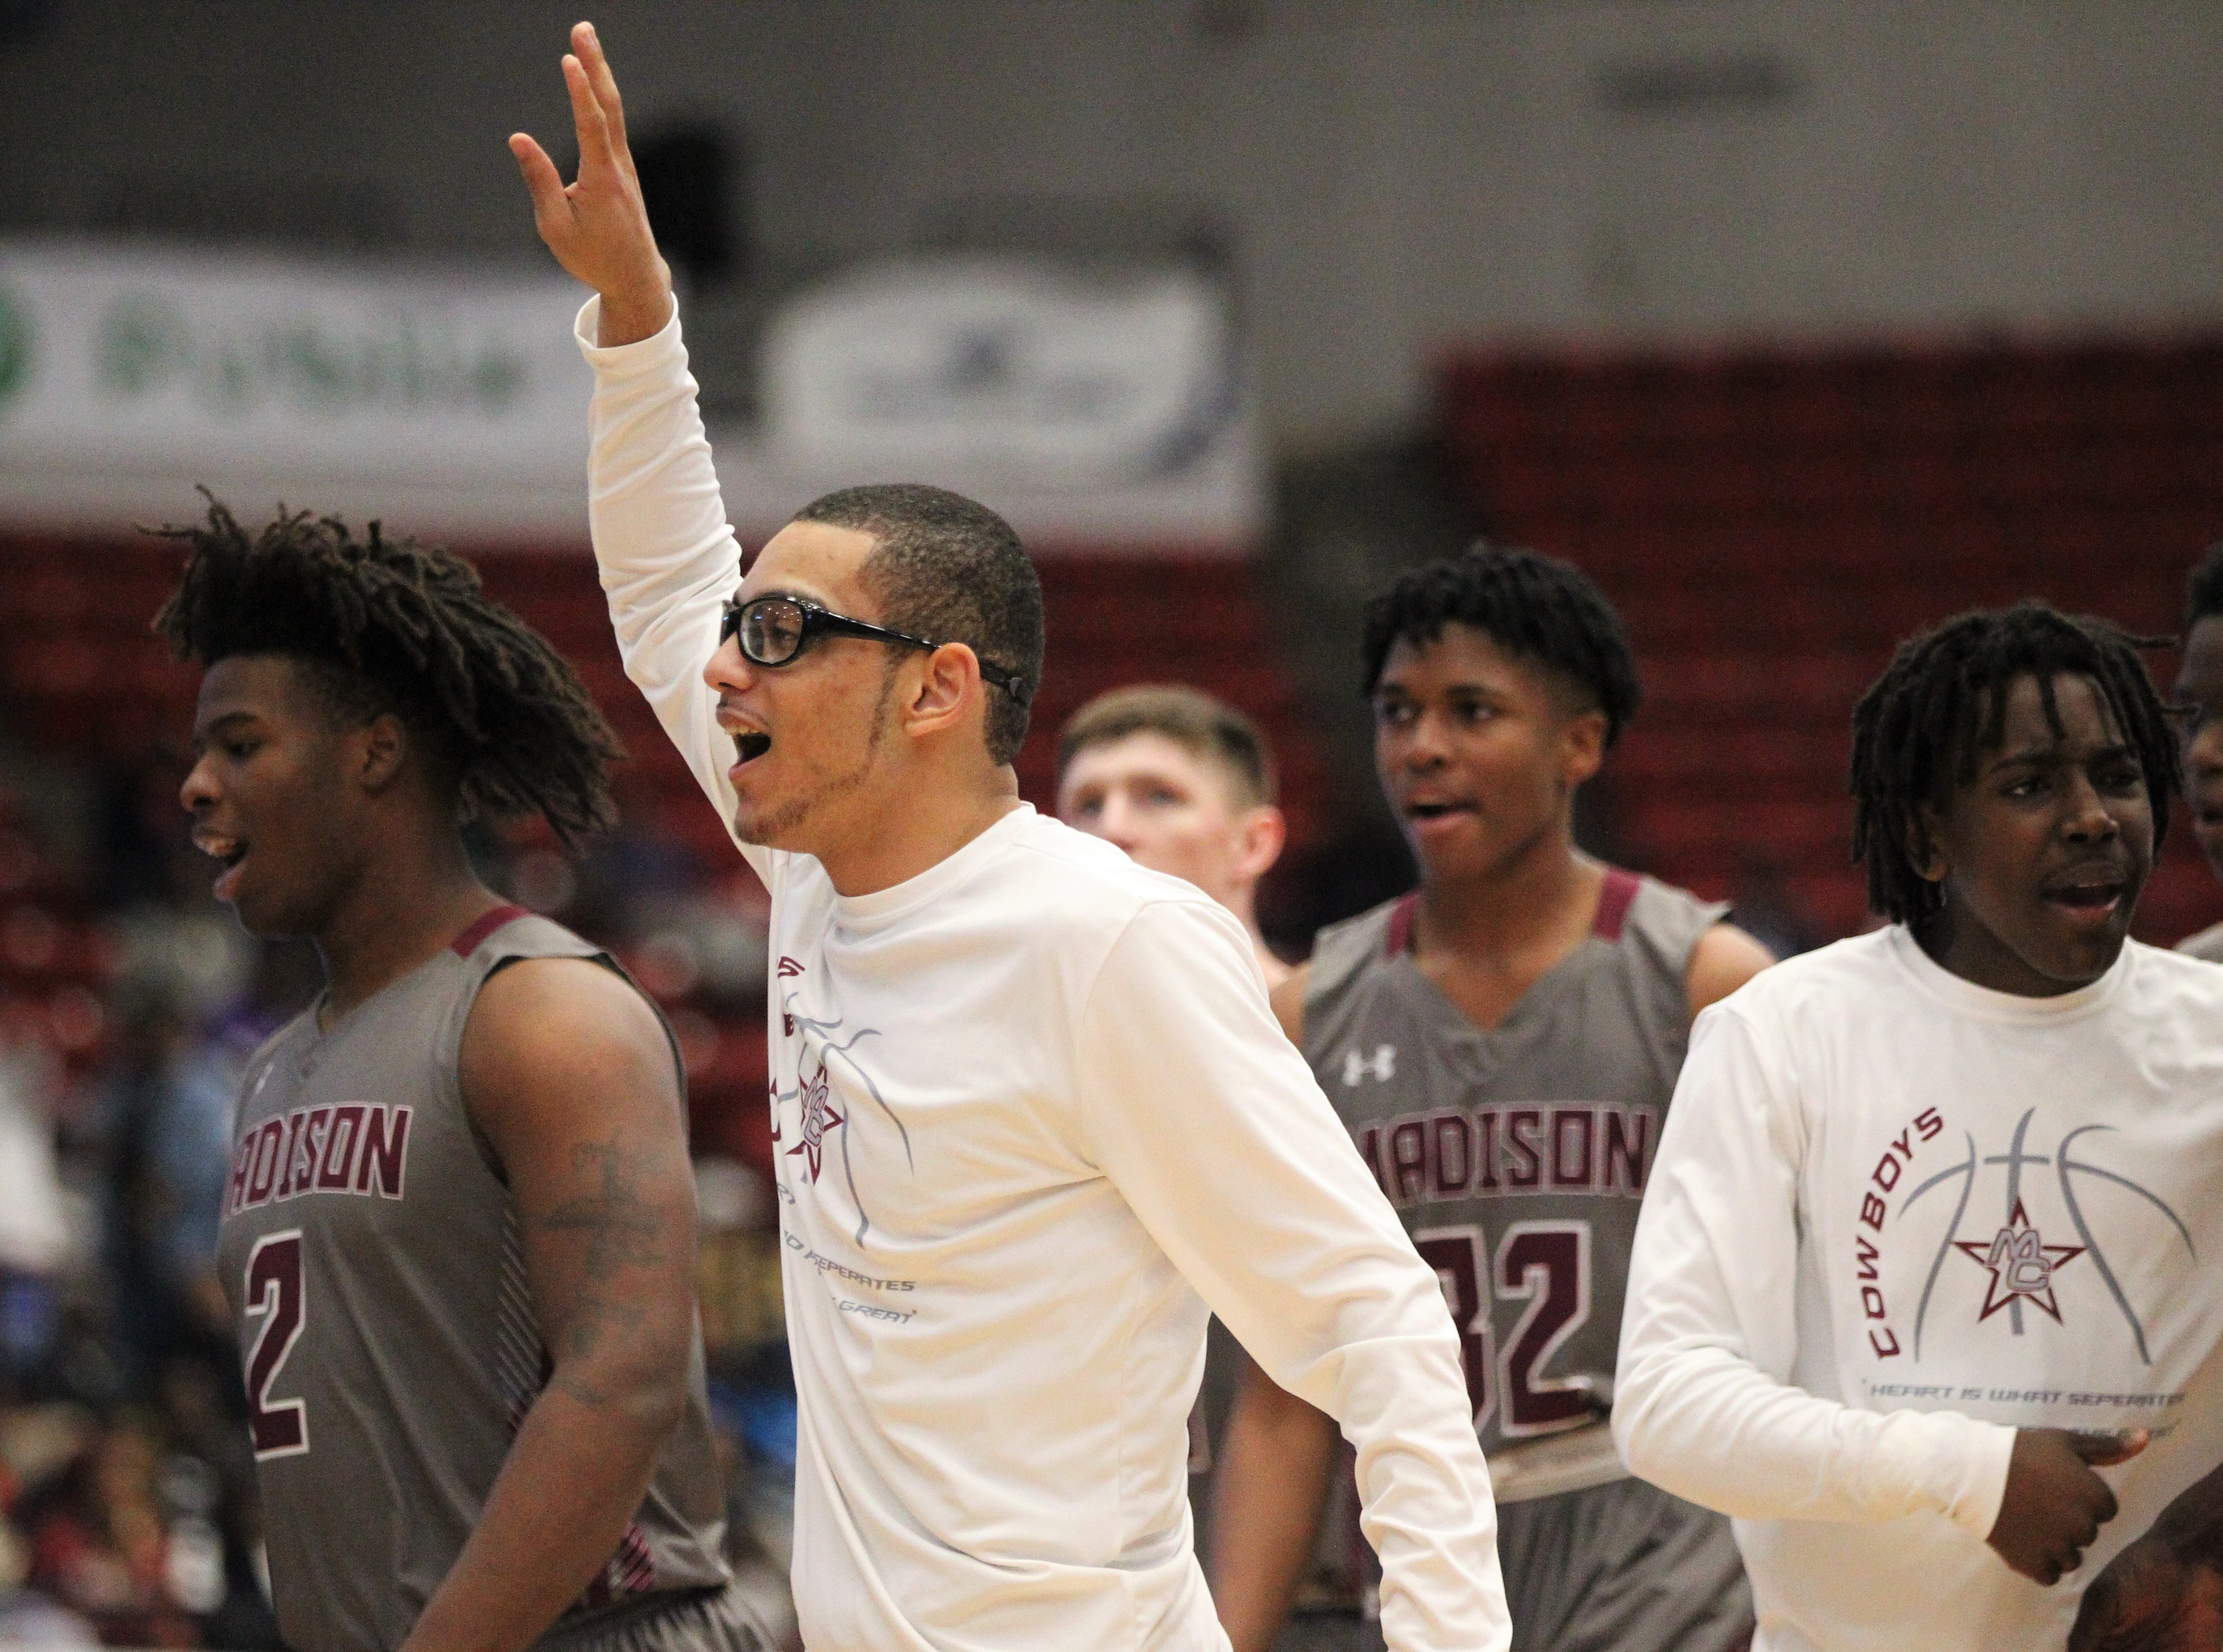 Madison County's basketball team captured a Class 1A state championship with a 62-60 victory over Wildwood at the RP Funding Center in Lakeland on Tuesday.